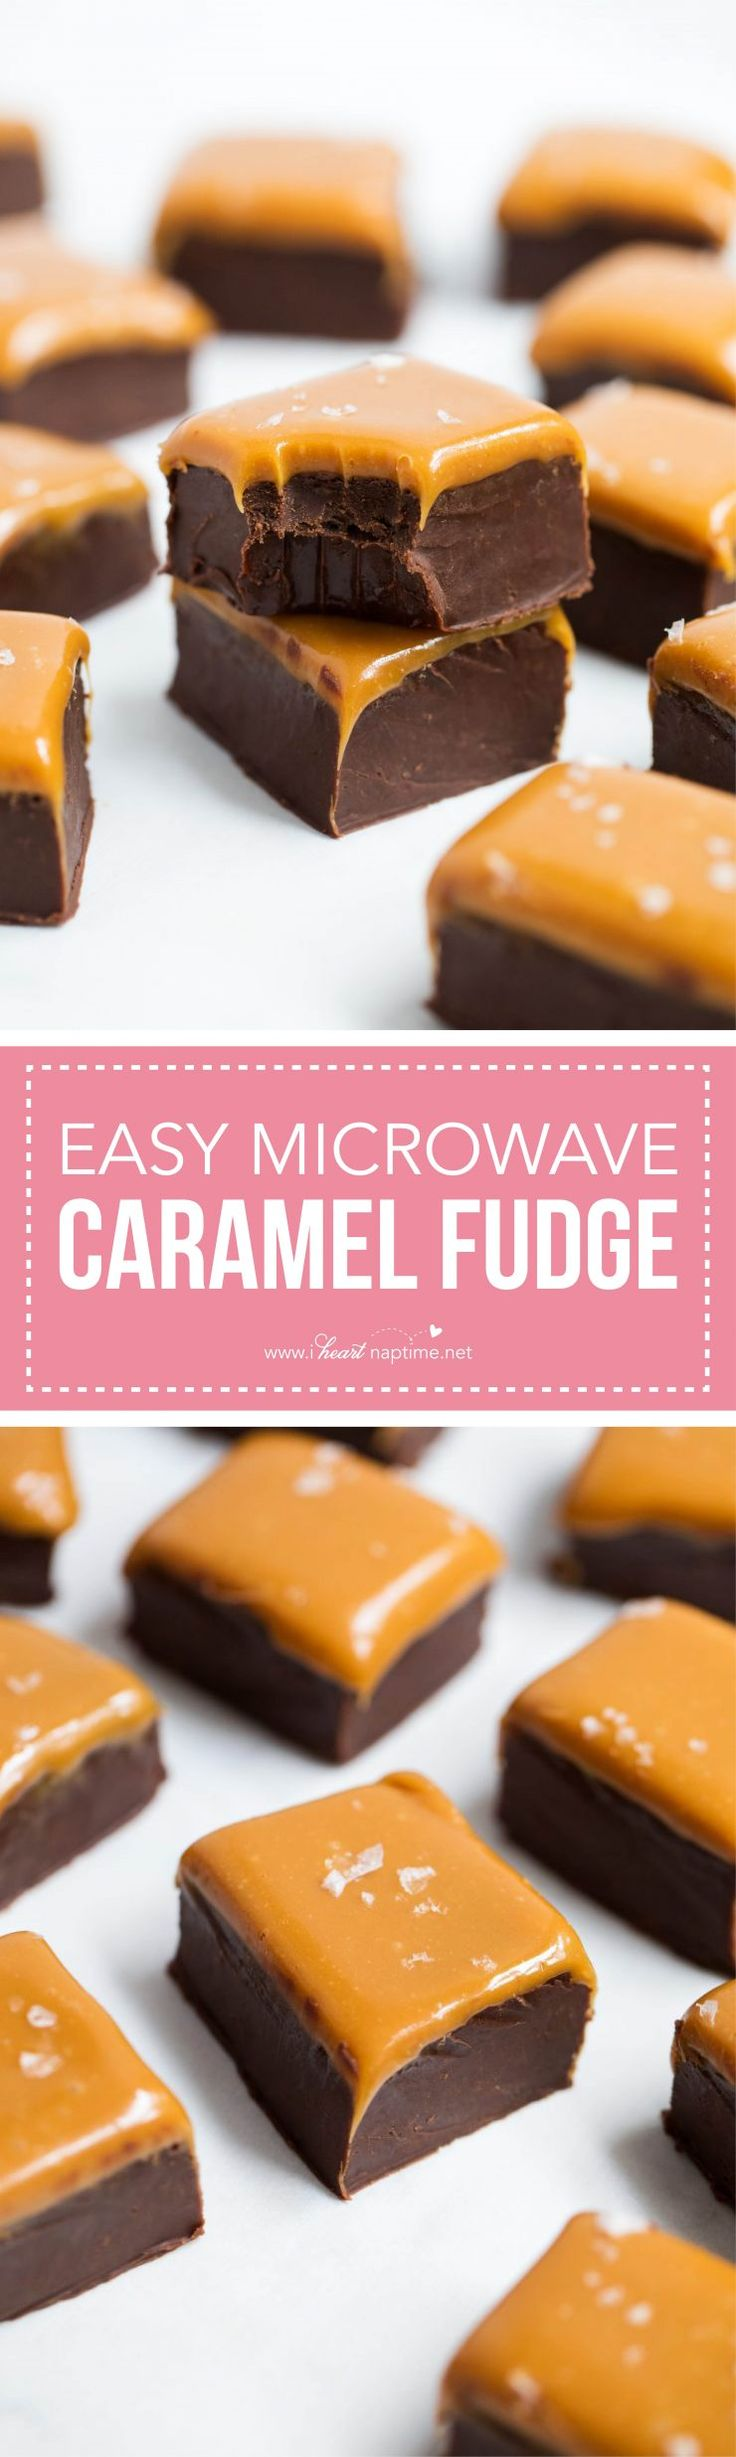 The BEST homemade microwave fudge recipe - I Heart Naptime